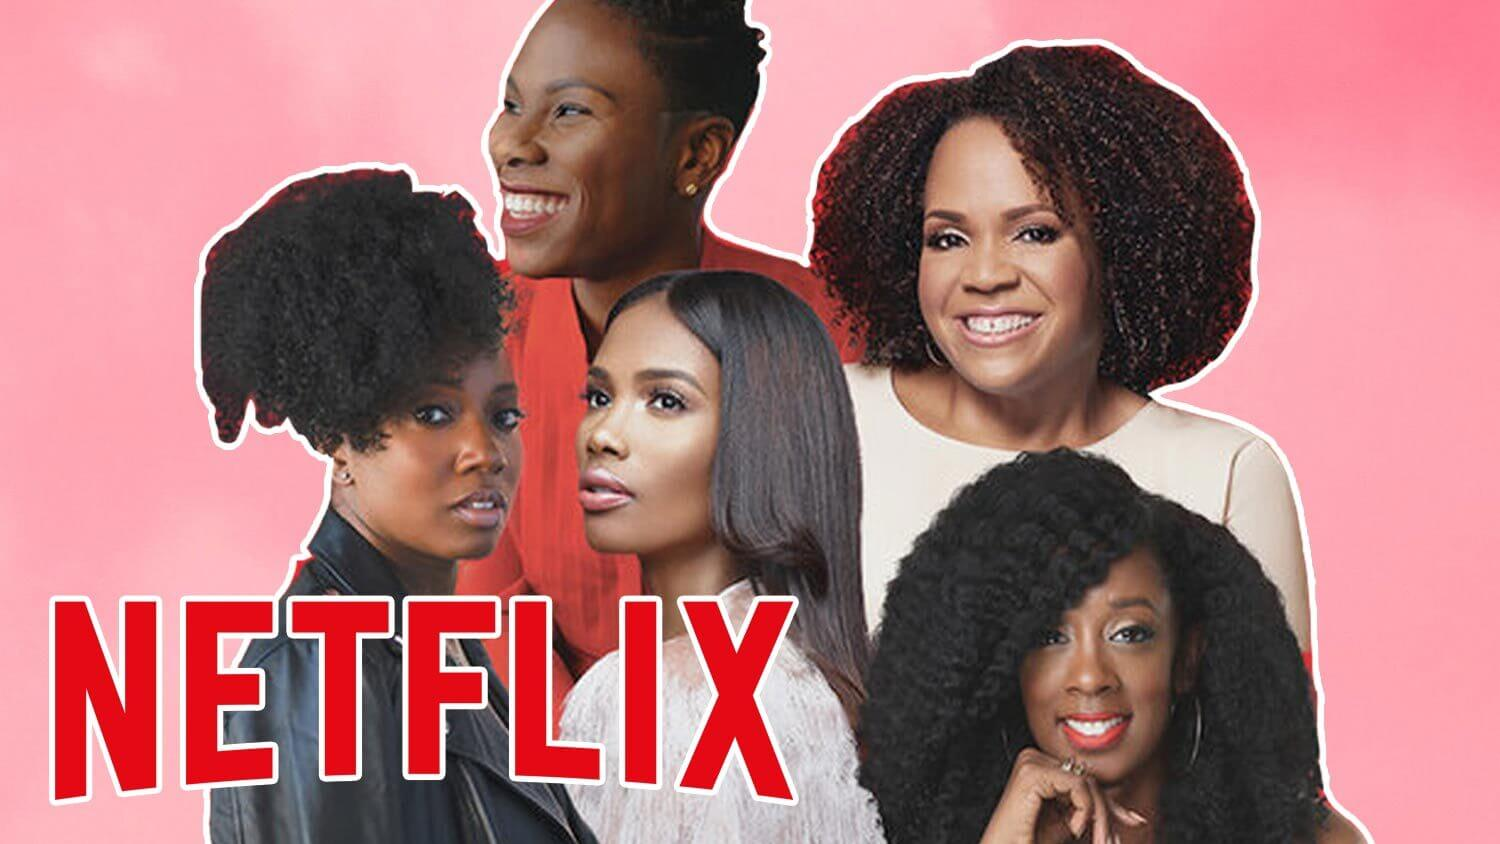 Netflix Documentary on Black Female Entrepreneurs Features 2 Vegan Brands